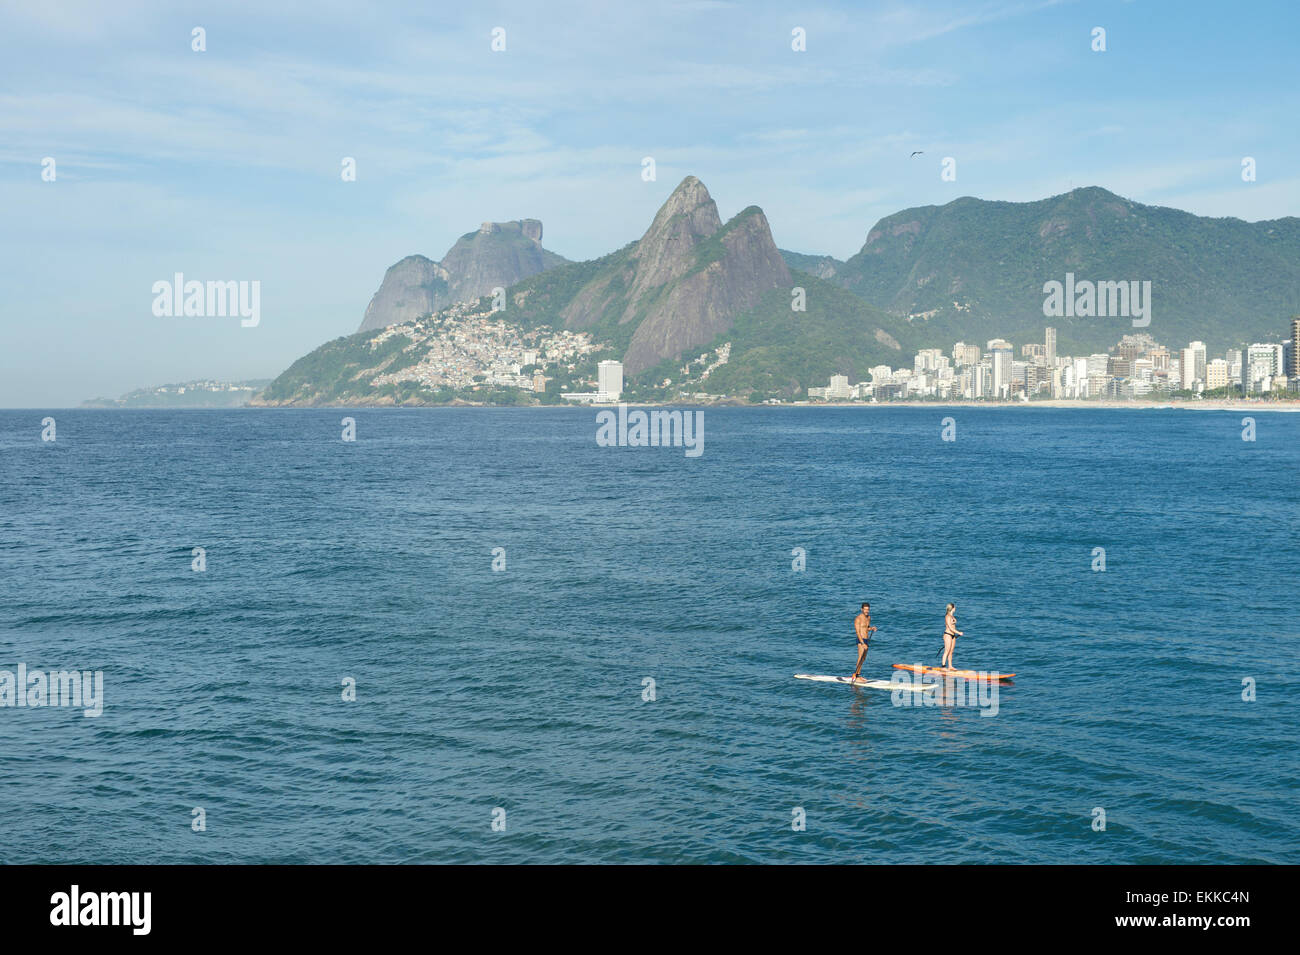 RIO DE JANEIRO, BRAZIL - MARCH 22, 2015: A pair of stand up paddle enthusiasts make their way along the water at - Stock Image